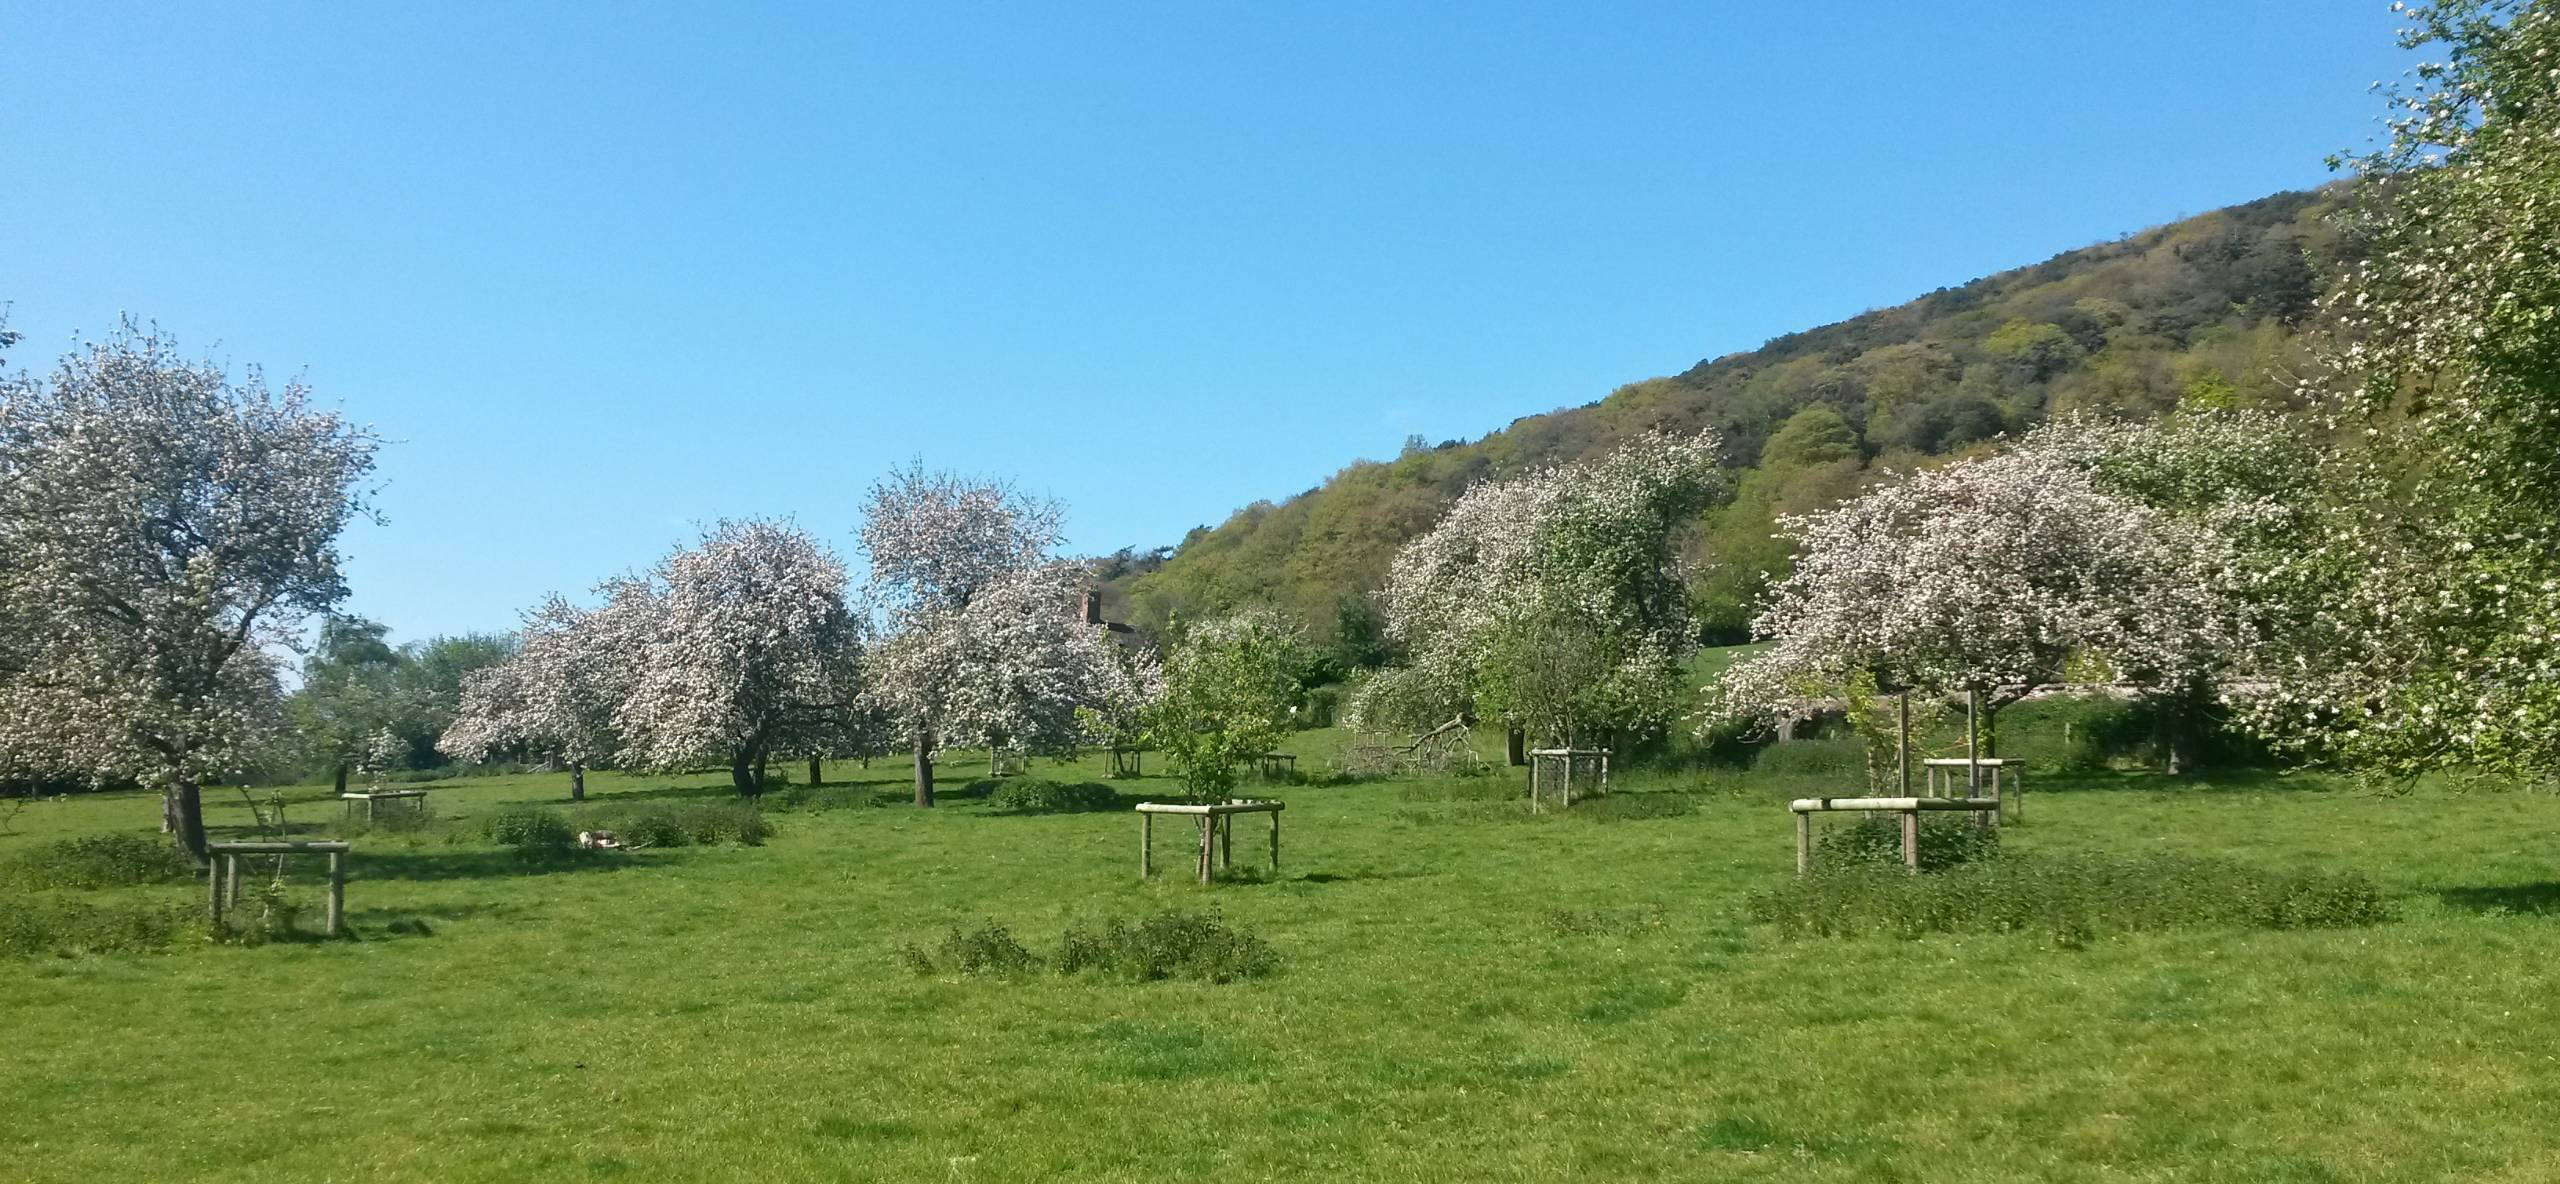 Porlock orchard in bloom